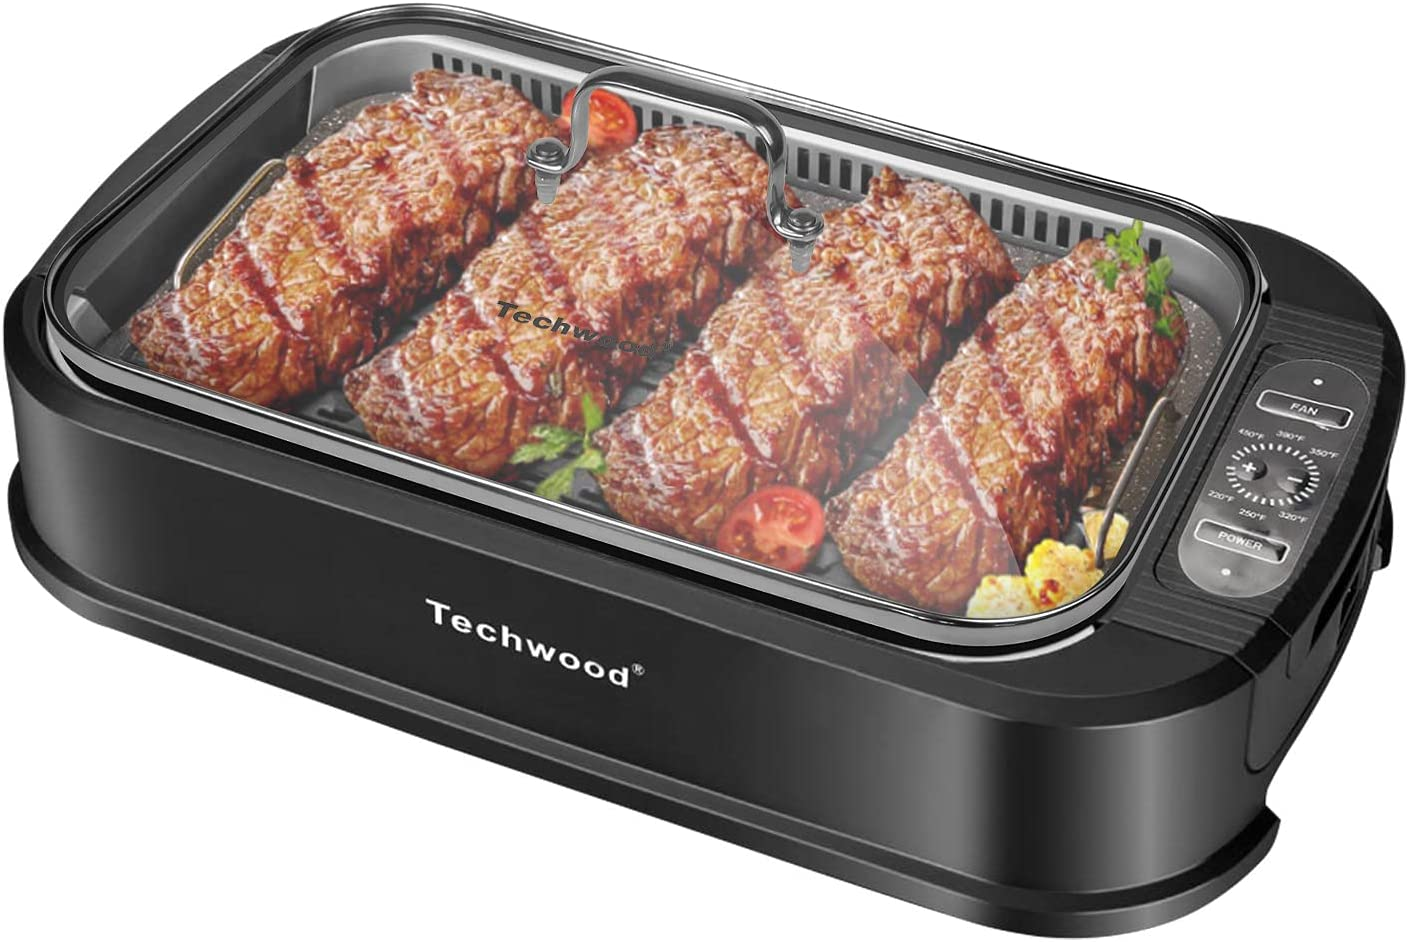 Techwood 1500W Electric Indoor Smokeless Grill $62.49 Coupon